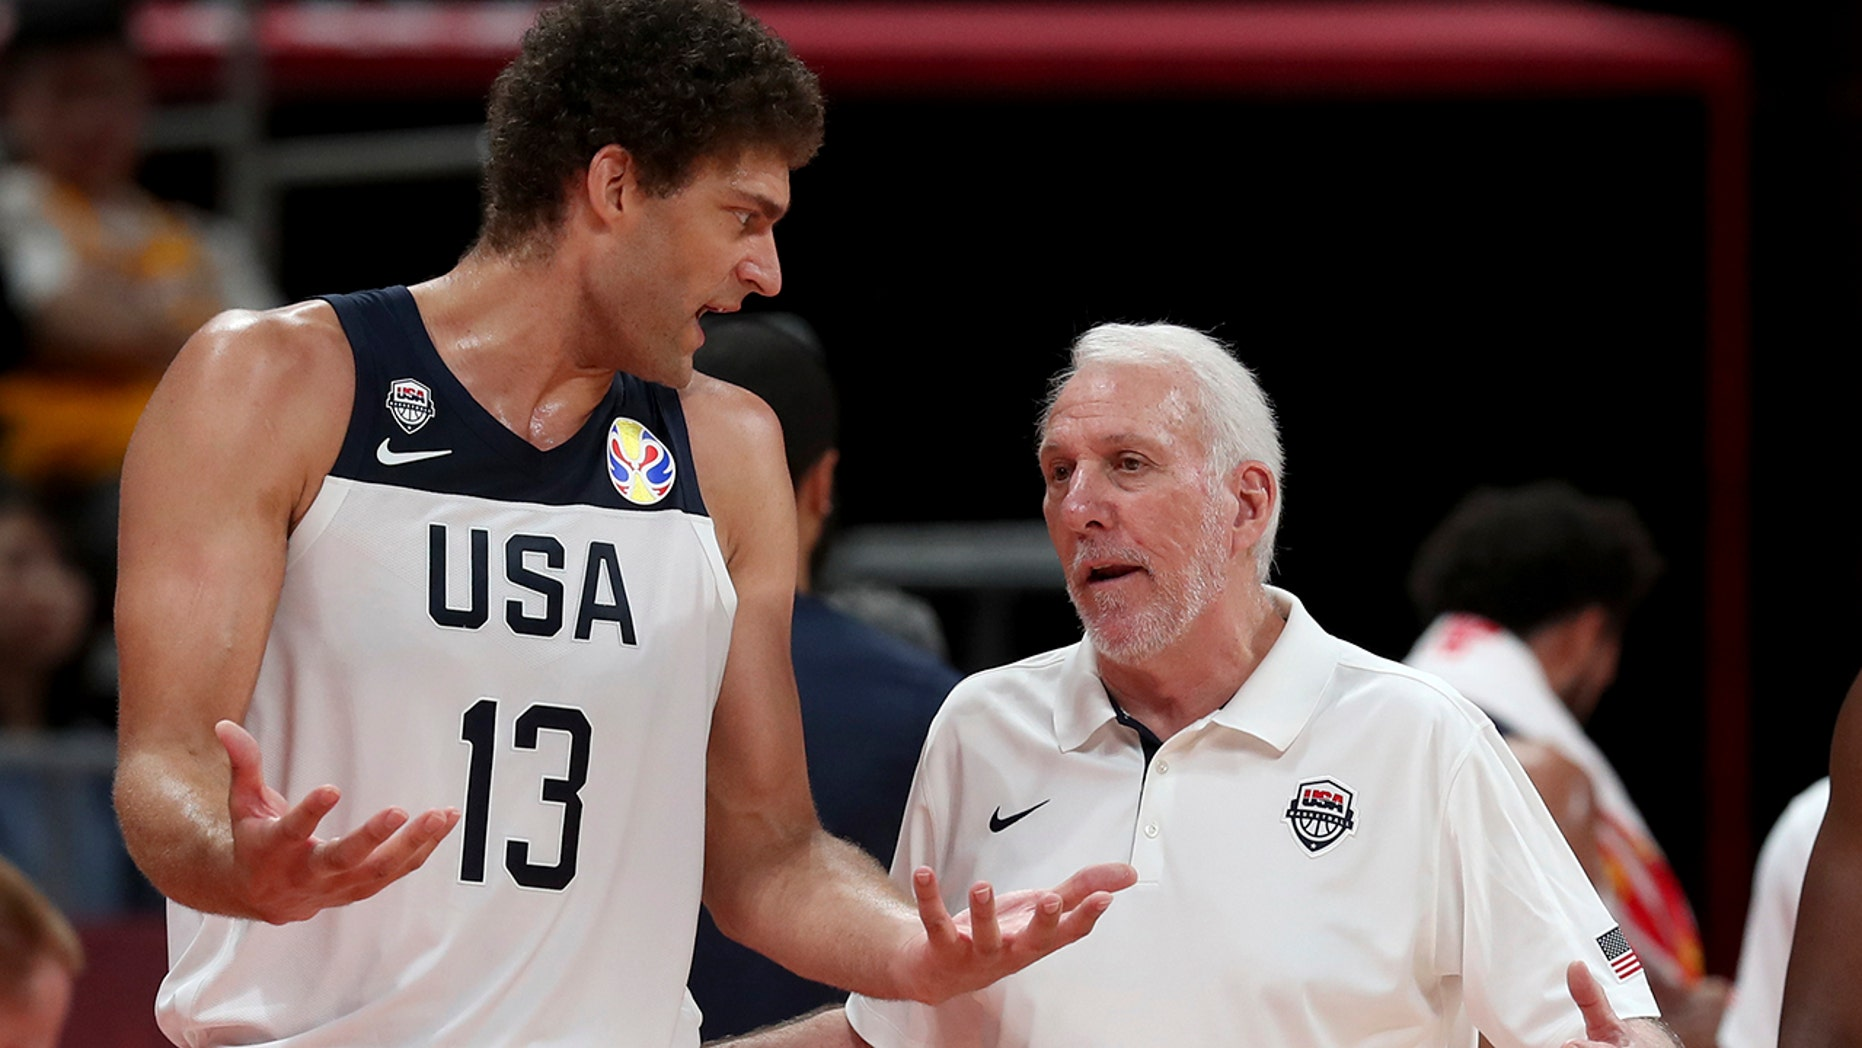 United States' coach Gregg Popovich chats with United States' Brook Lopez during a consolation playoff game against Poland for the FIBA Basketball World Cup at the Cadillac Arena in Beijing on Saturday, Sept. 14, 2019. U.S. defeated Poland 87-74 (AP Photo/Ng Han Guan)